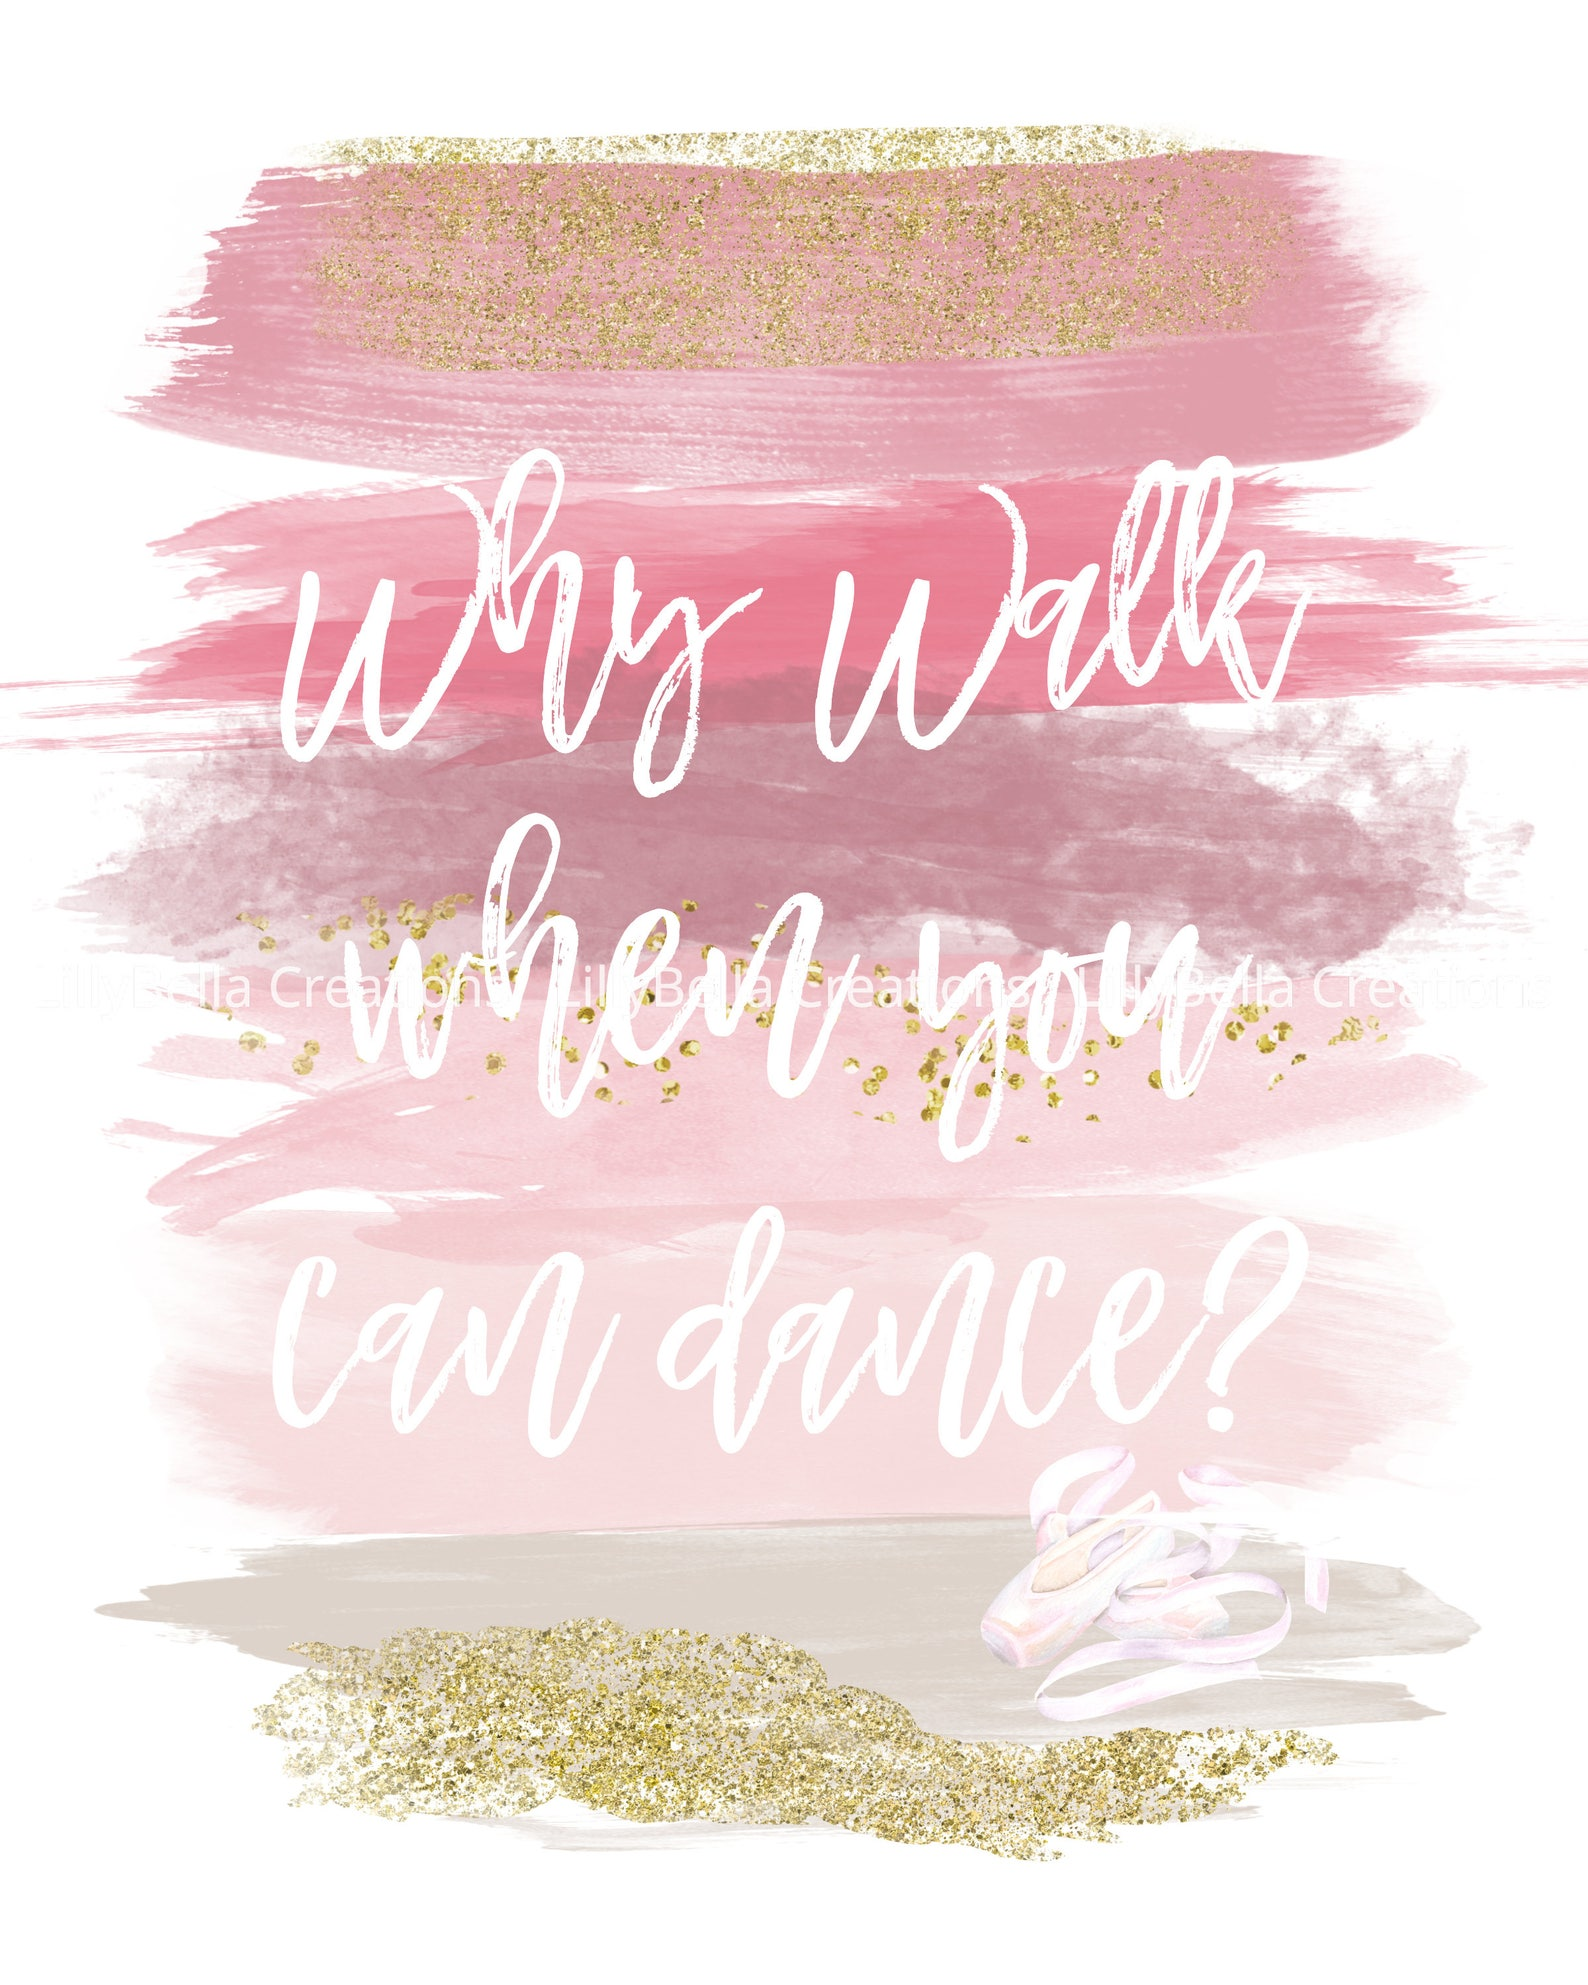 ballet dance - watercolor brush art print with quote: 8